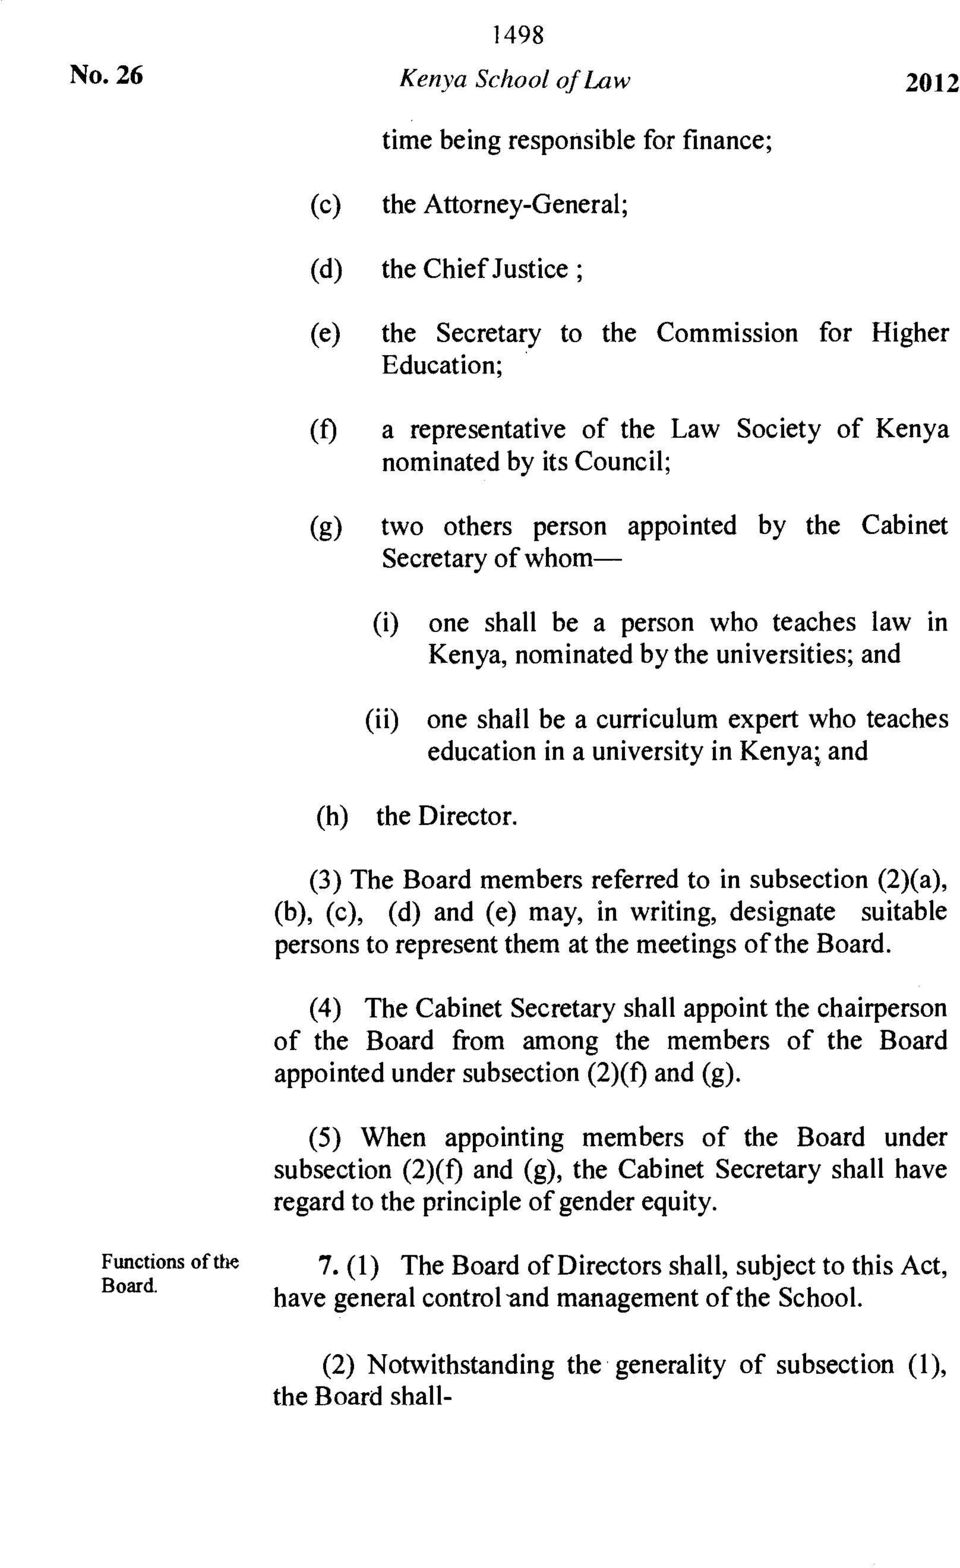 Law Society of Kenya nominated by its Council; (g) two others person appointed by the Cabinet Secretary of whom- (i) (ii) one shall be a person who teaches law in Kenya, nominated by the